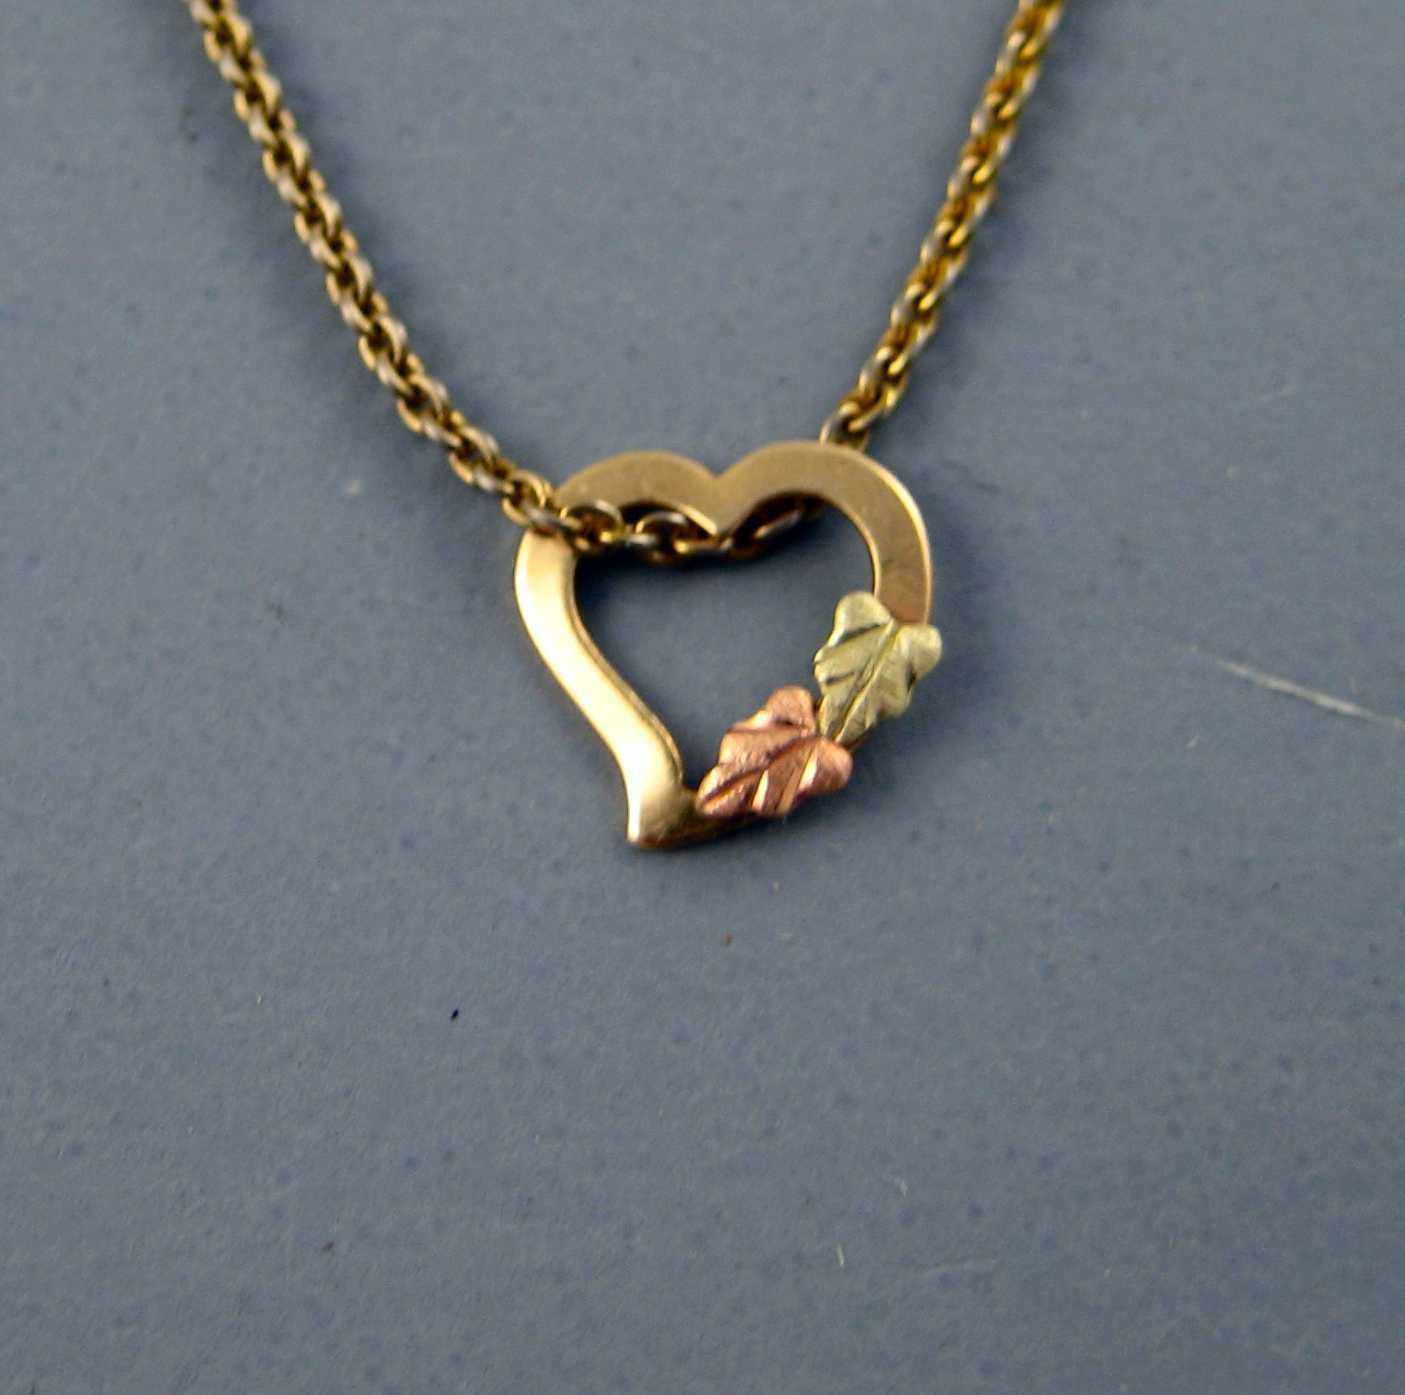 Floating Heart 10K Yellow Gold Heart Pendant with Chain